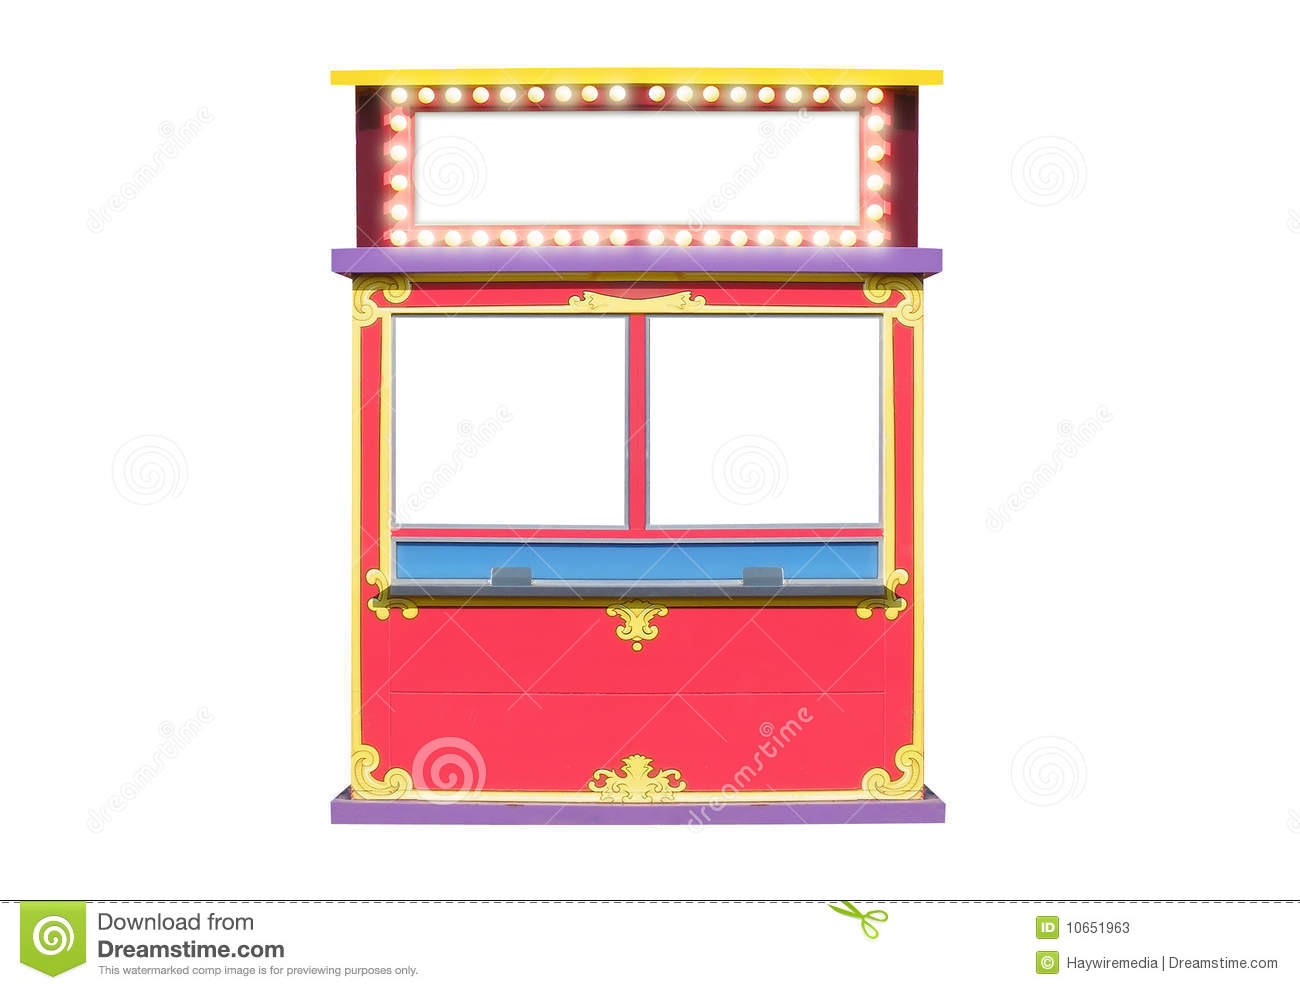 Carnival clipart ticket booth Movie clipart theater collection booth